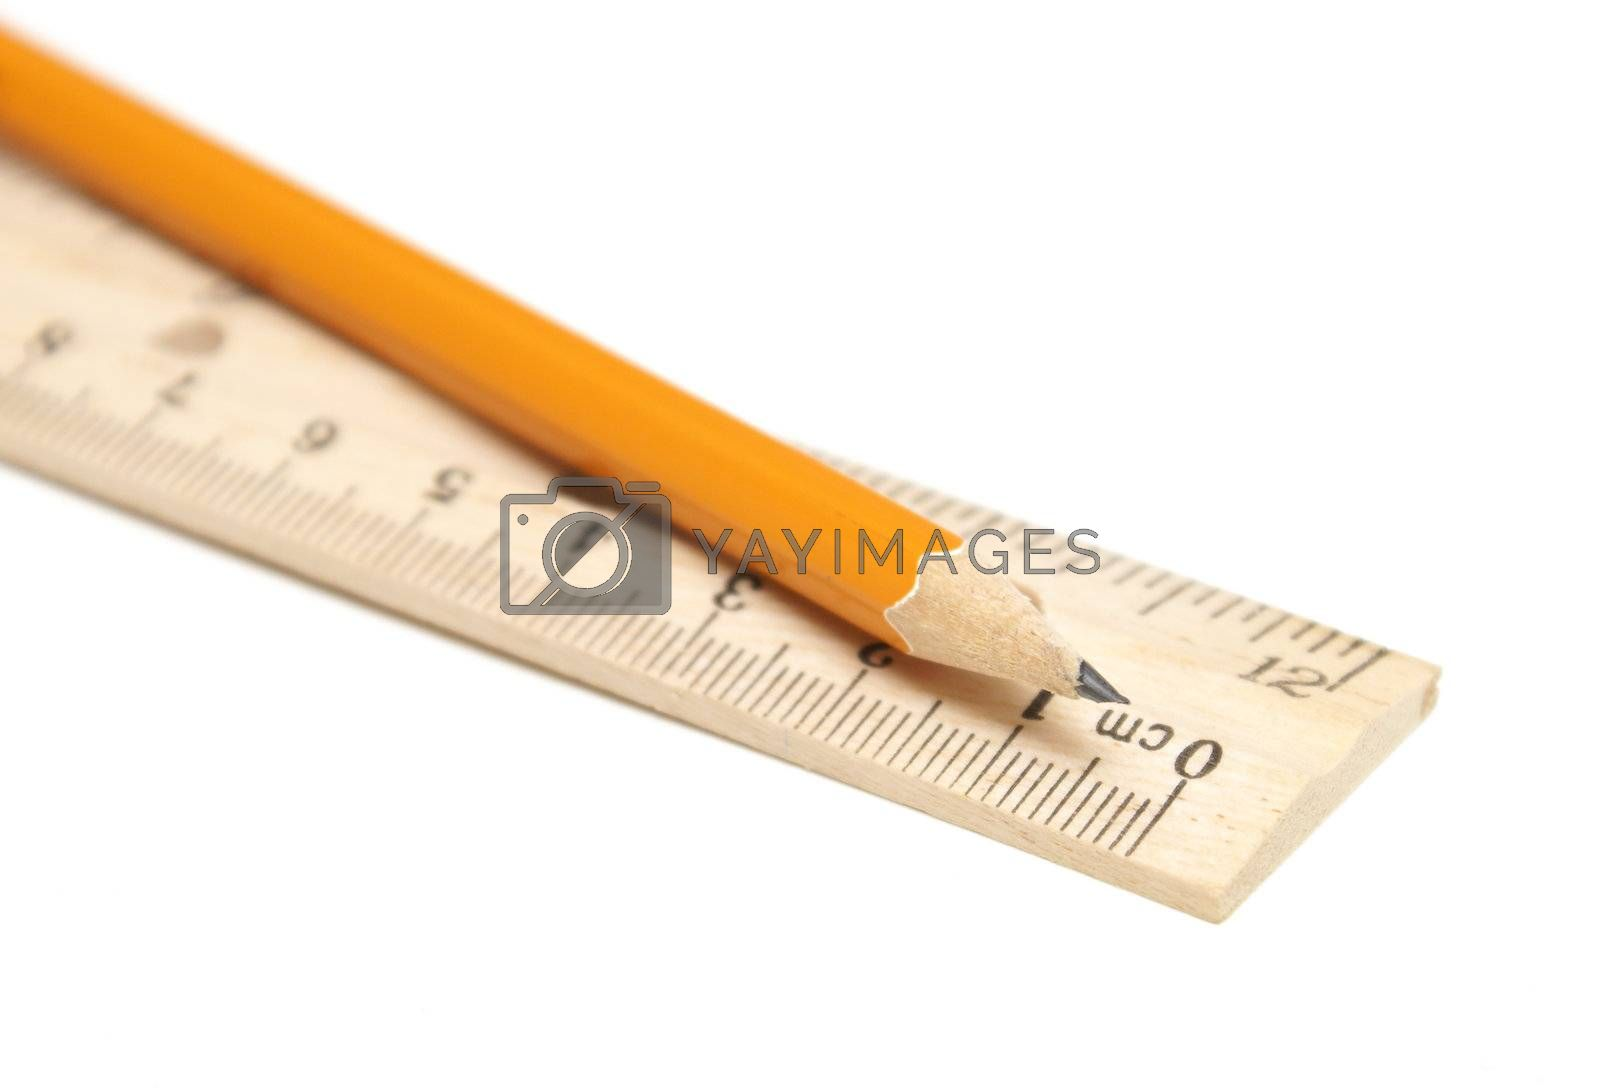 Royalty free image of Pencil and Ruler by AlphaBaby